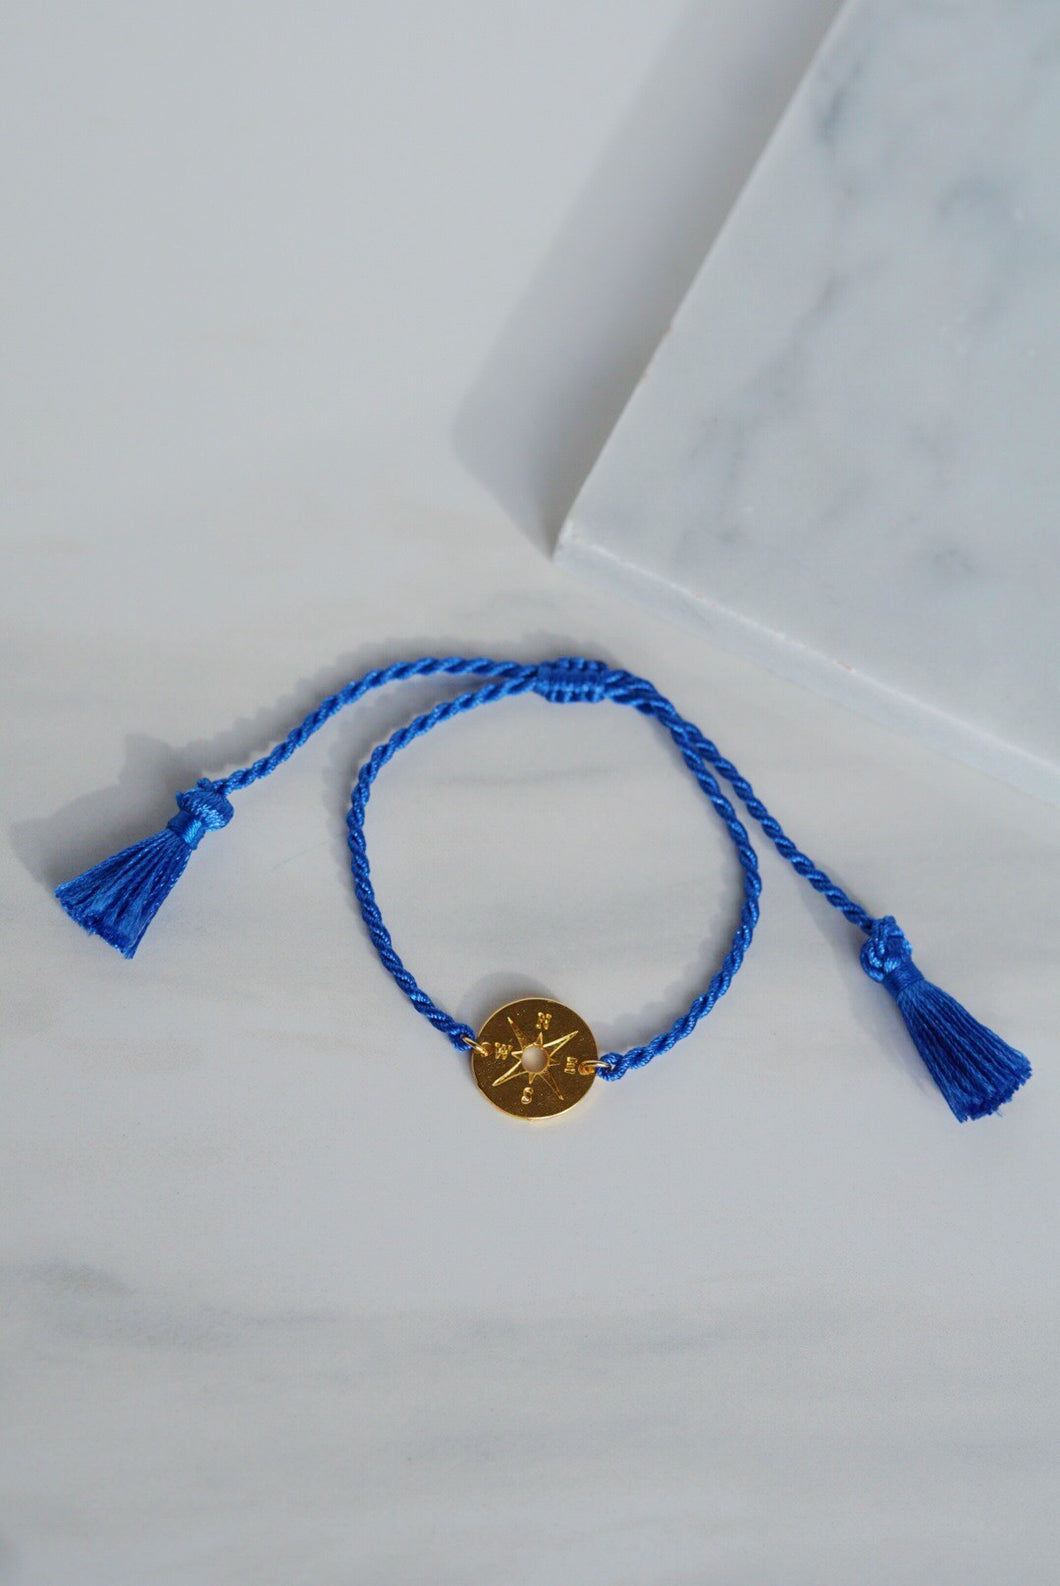 MERIDIAN Compass Charm Thread Slider Bracelet